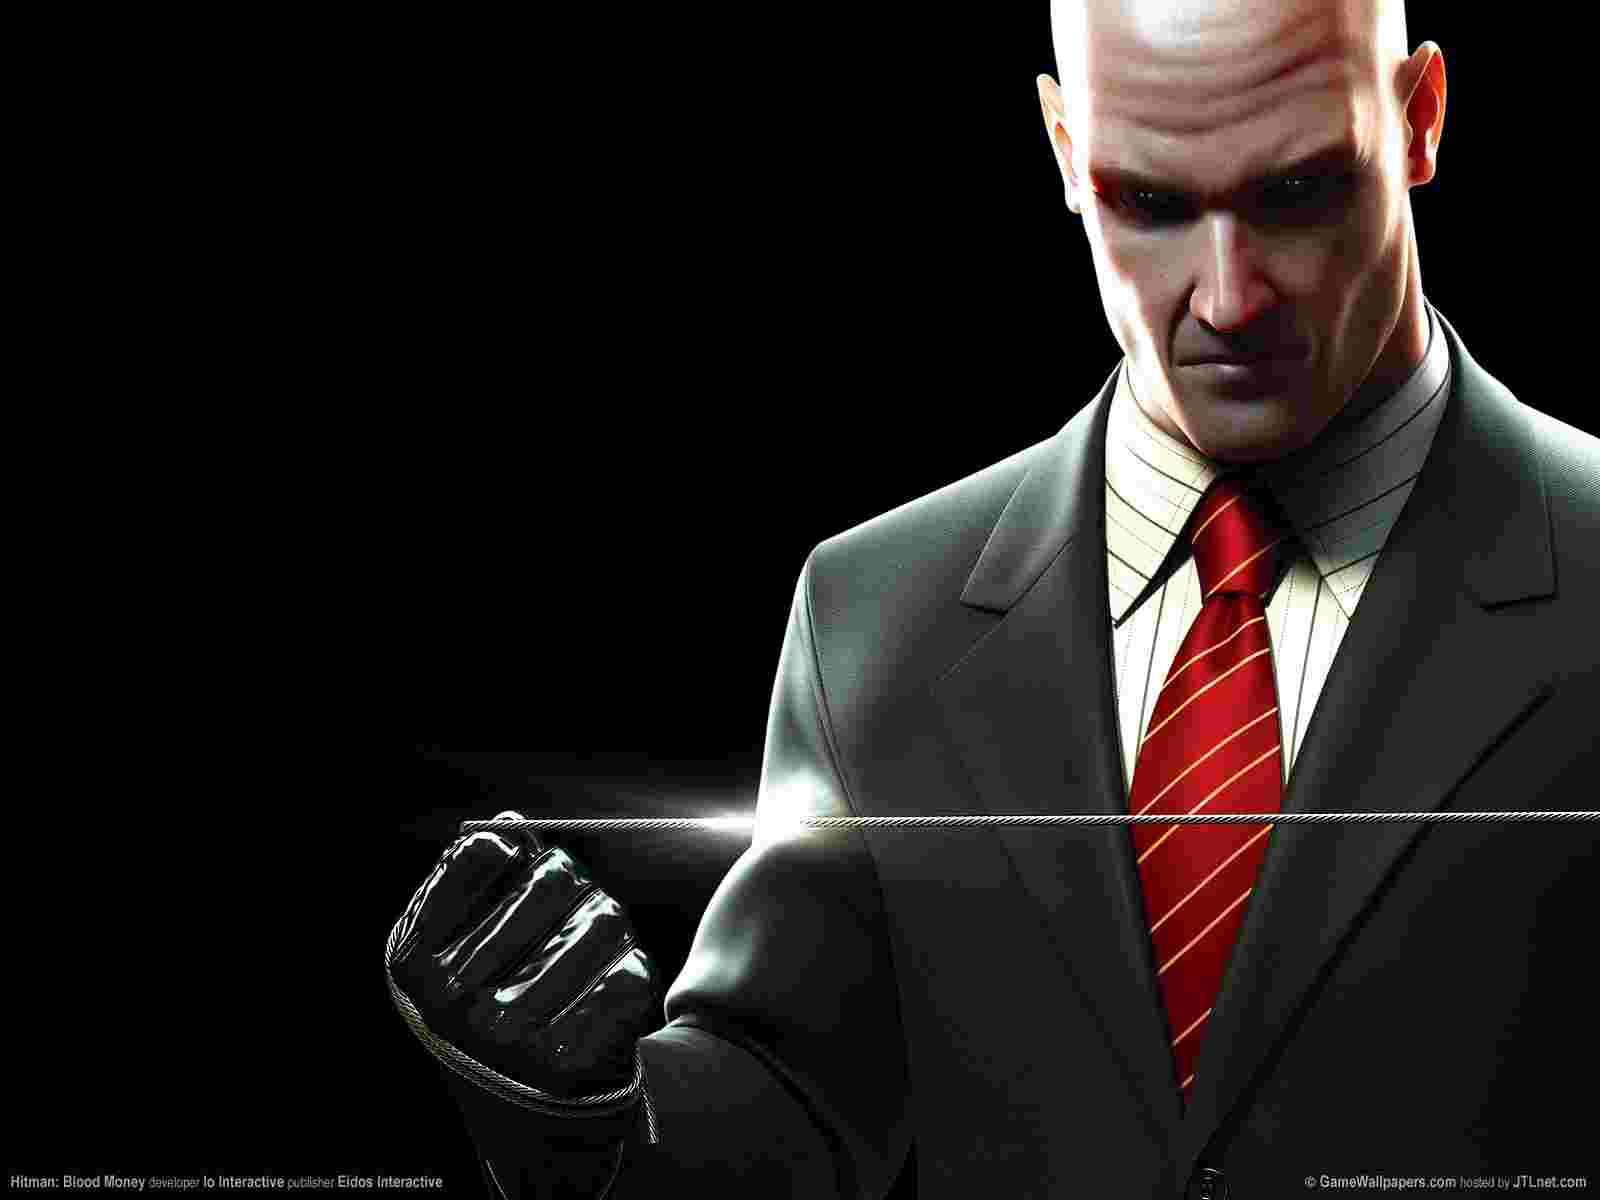 search keywords wall hitman hitman hitman blood money hitman wallpaper 1600x1200